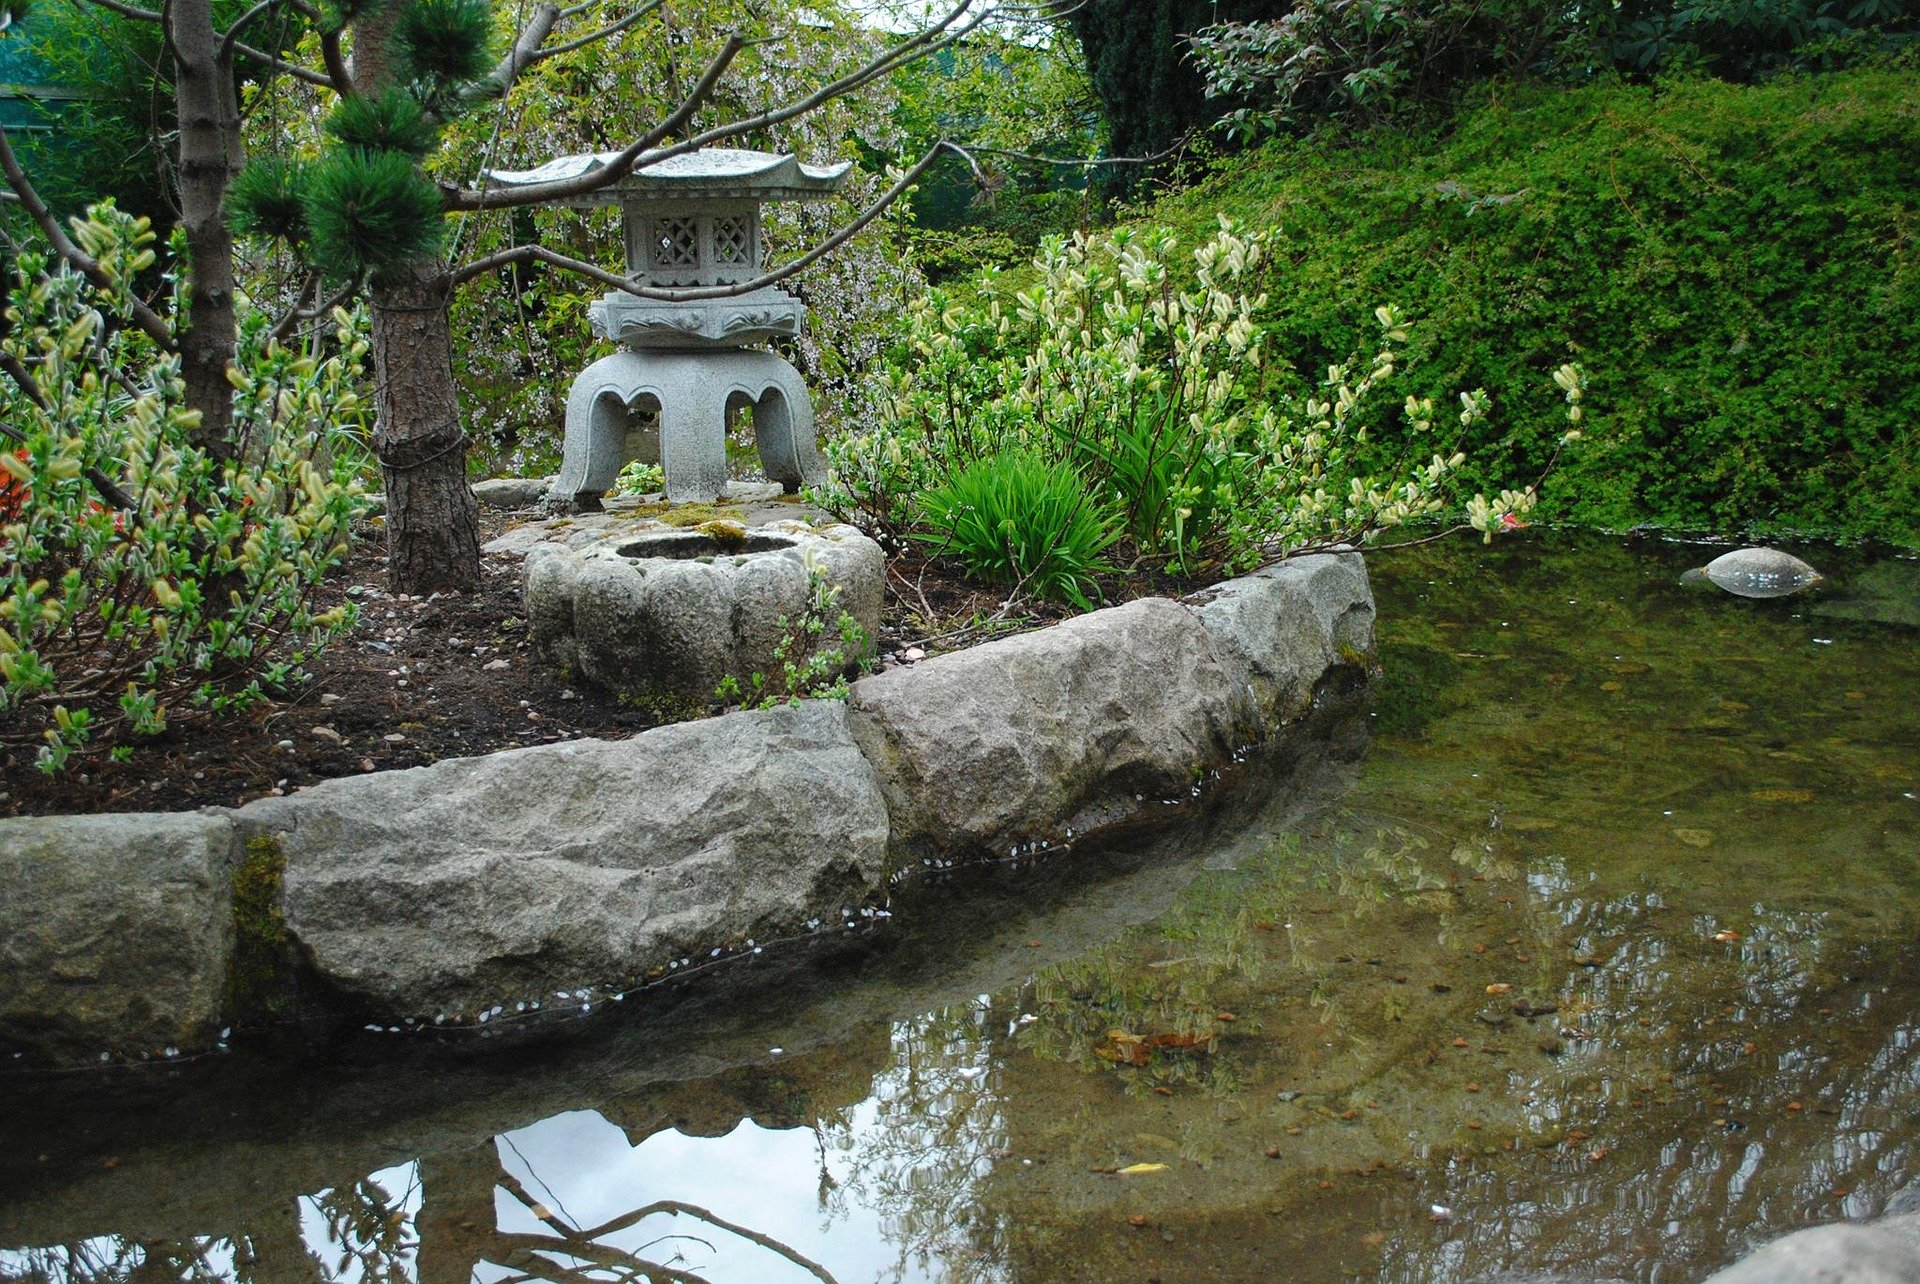 Sculpted stone lantern beside the pond.